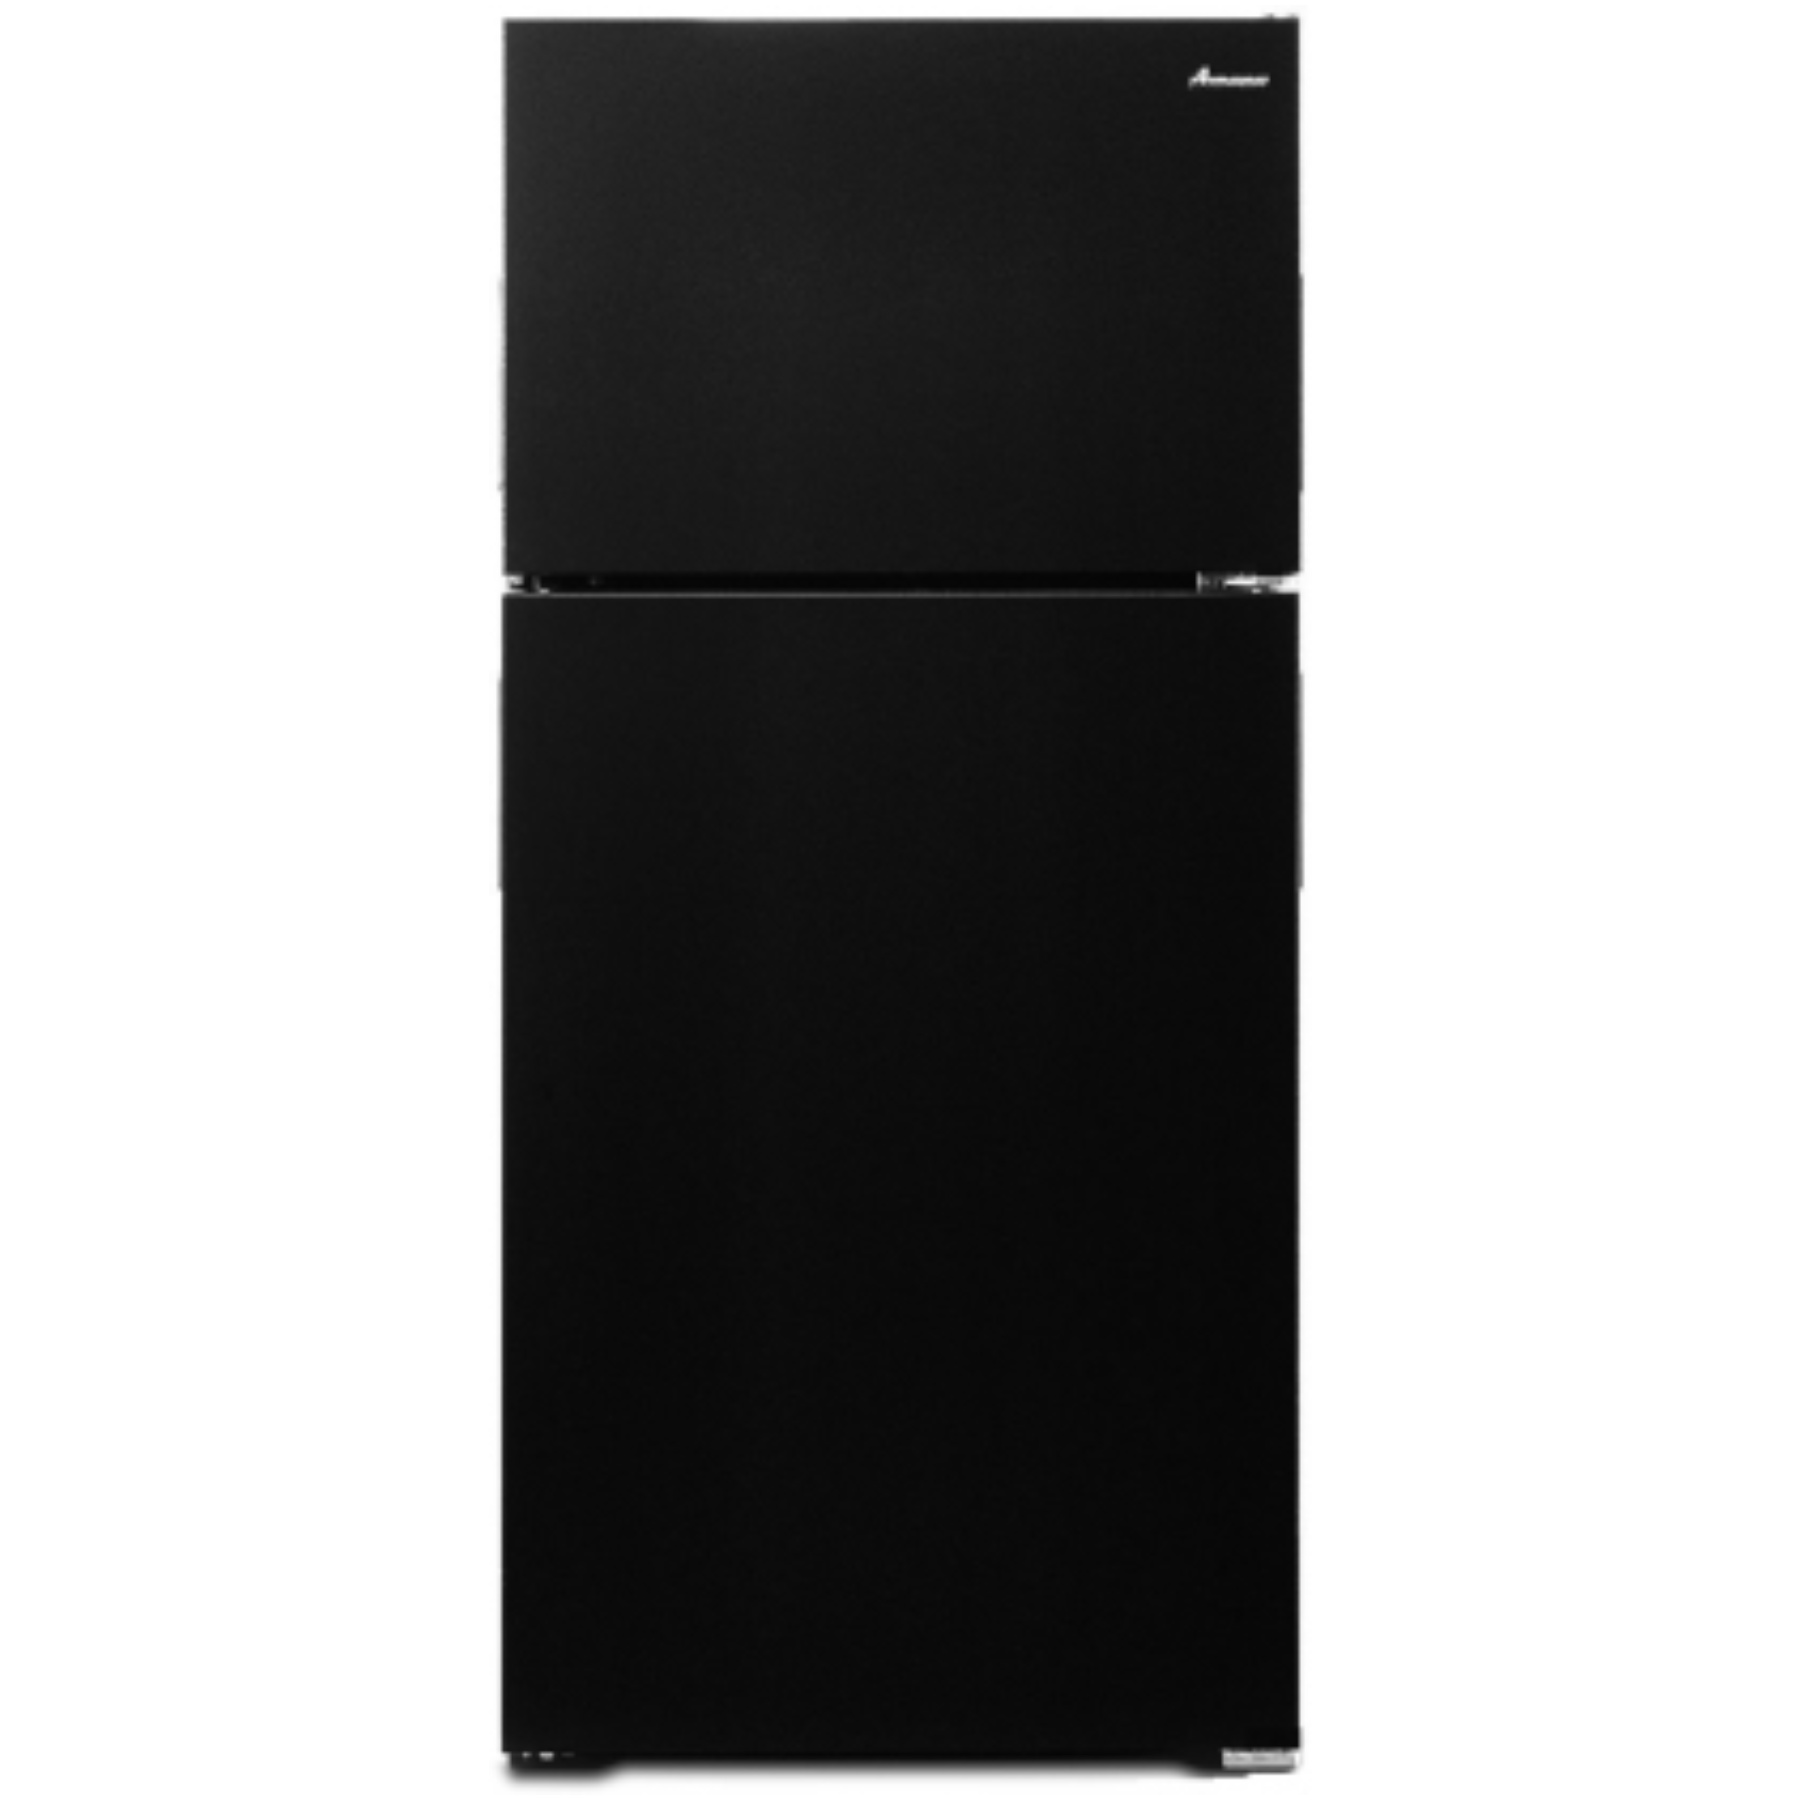 AMANA� 16 CU. FT. TOP-FREEZER REFRIGERATOR, BLACK, REVERSIBLE DOOR